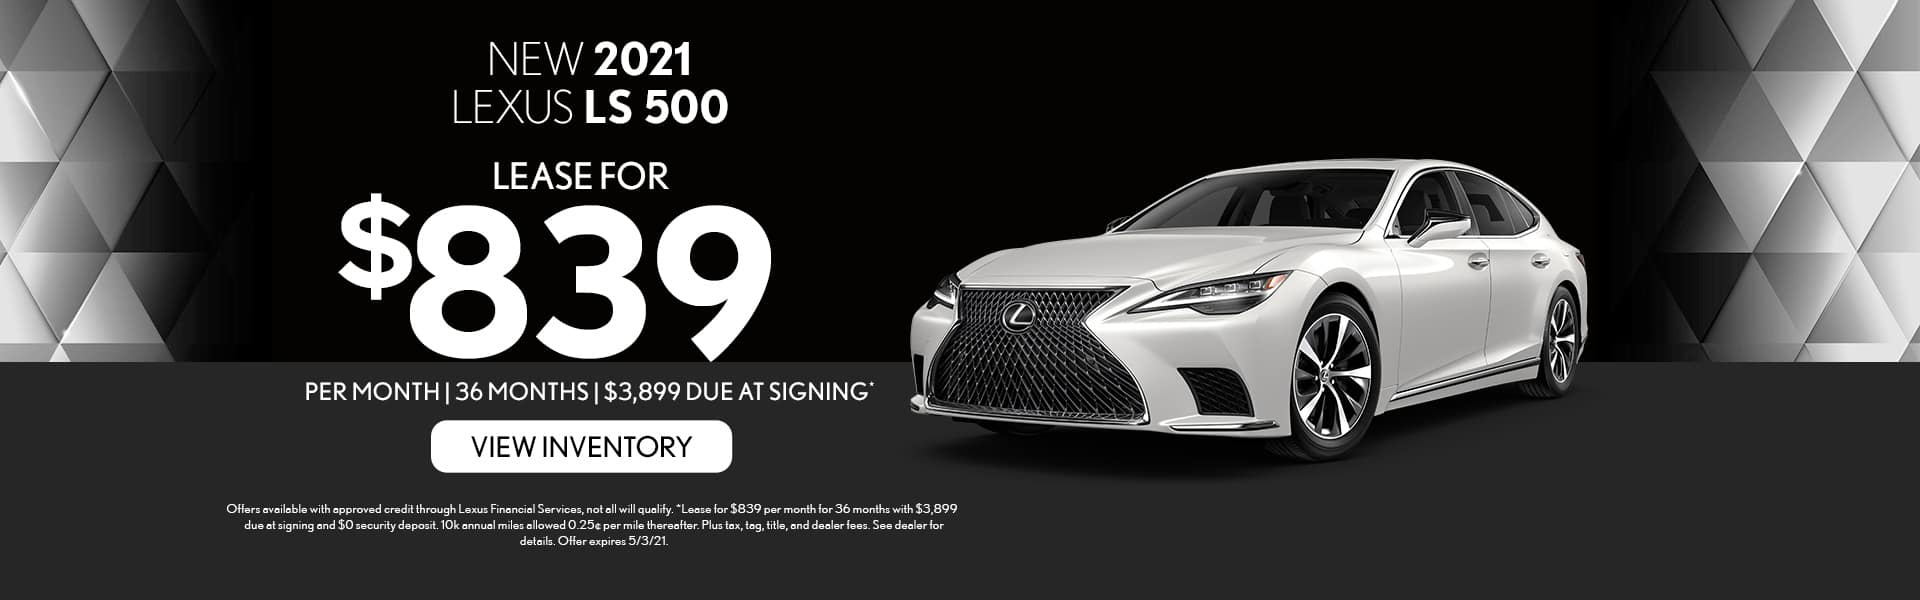 2021 Lexus LS 500 for lease in Mobile, AL